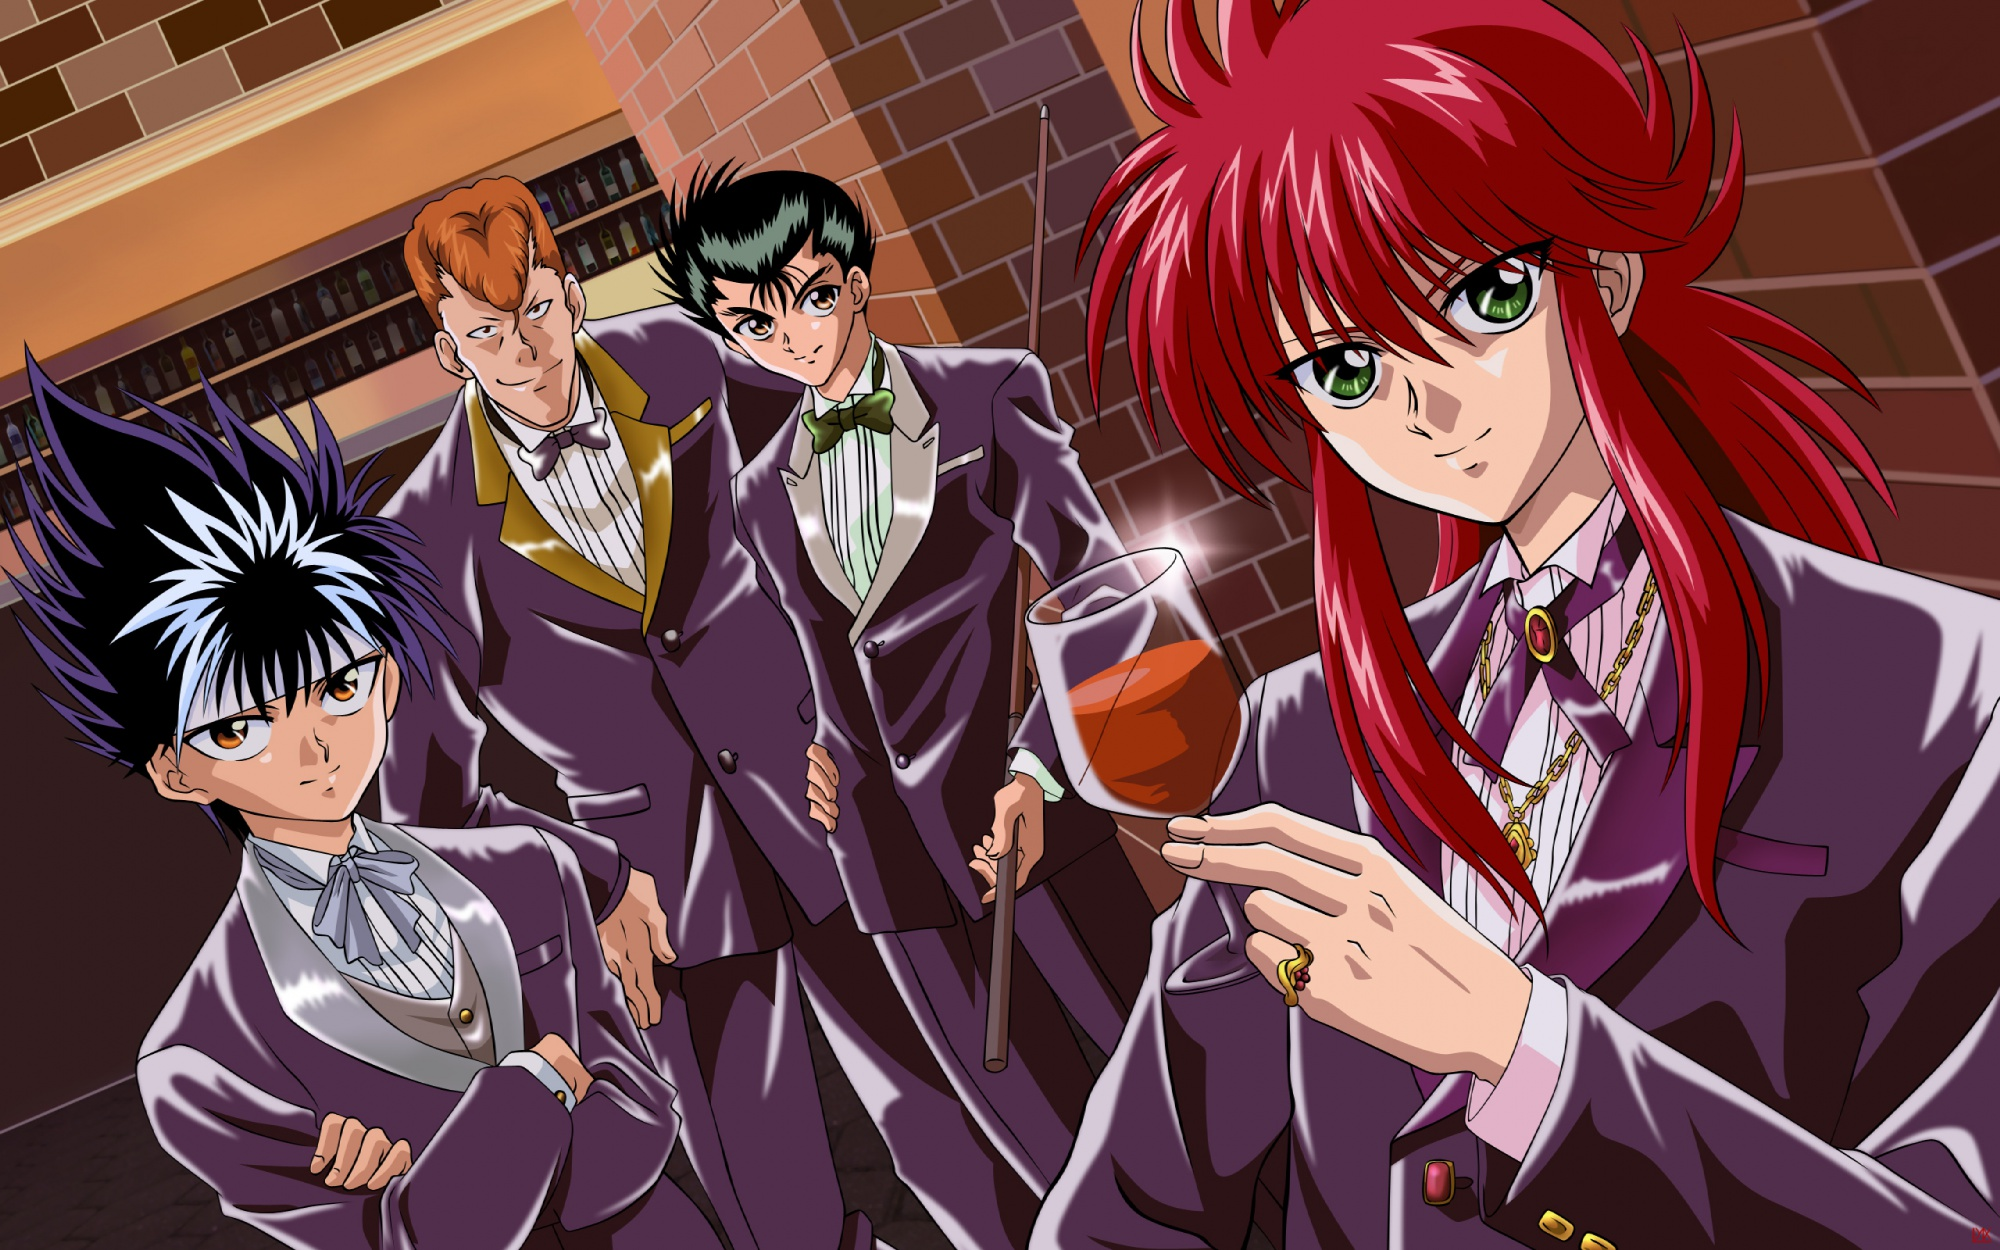 all_male black_hair bow brown_eyes brown_hair drink green_eyes hiei_jaganshi kurama kuwabara_kazuma long_hair male red_hair short_hair smoking suit urameshi_yuusuke yu_yu_hakusho